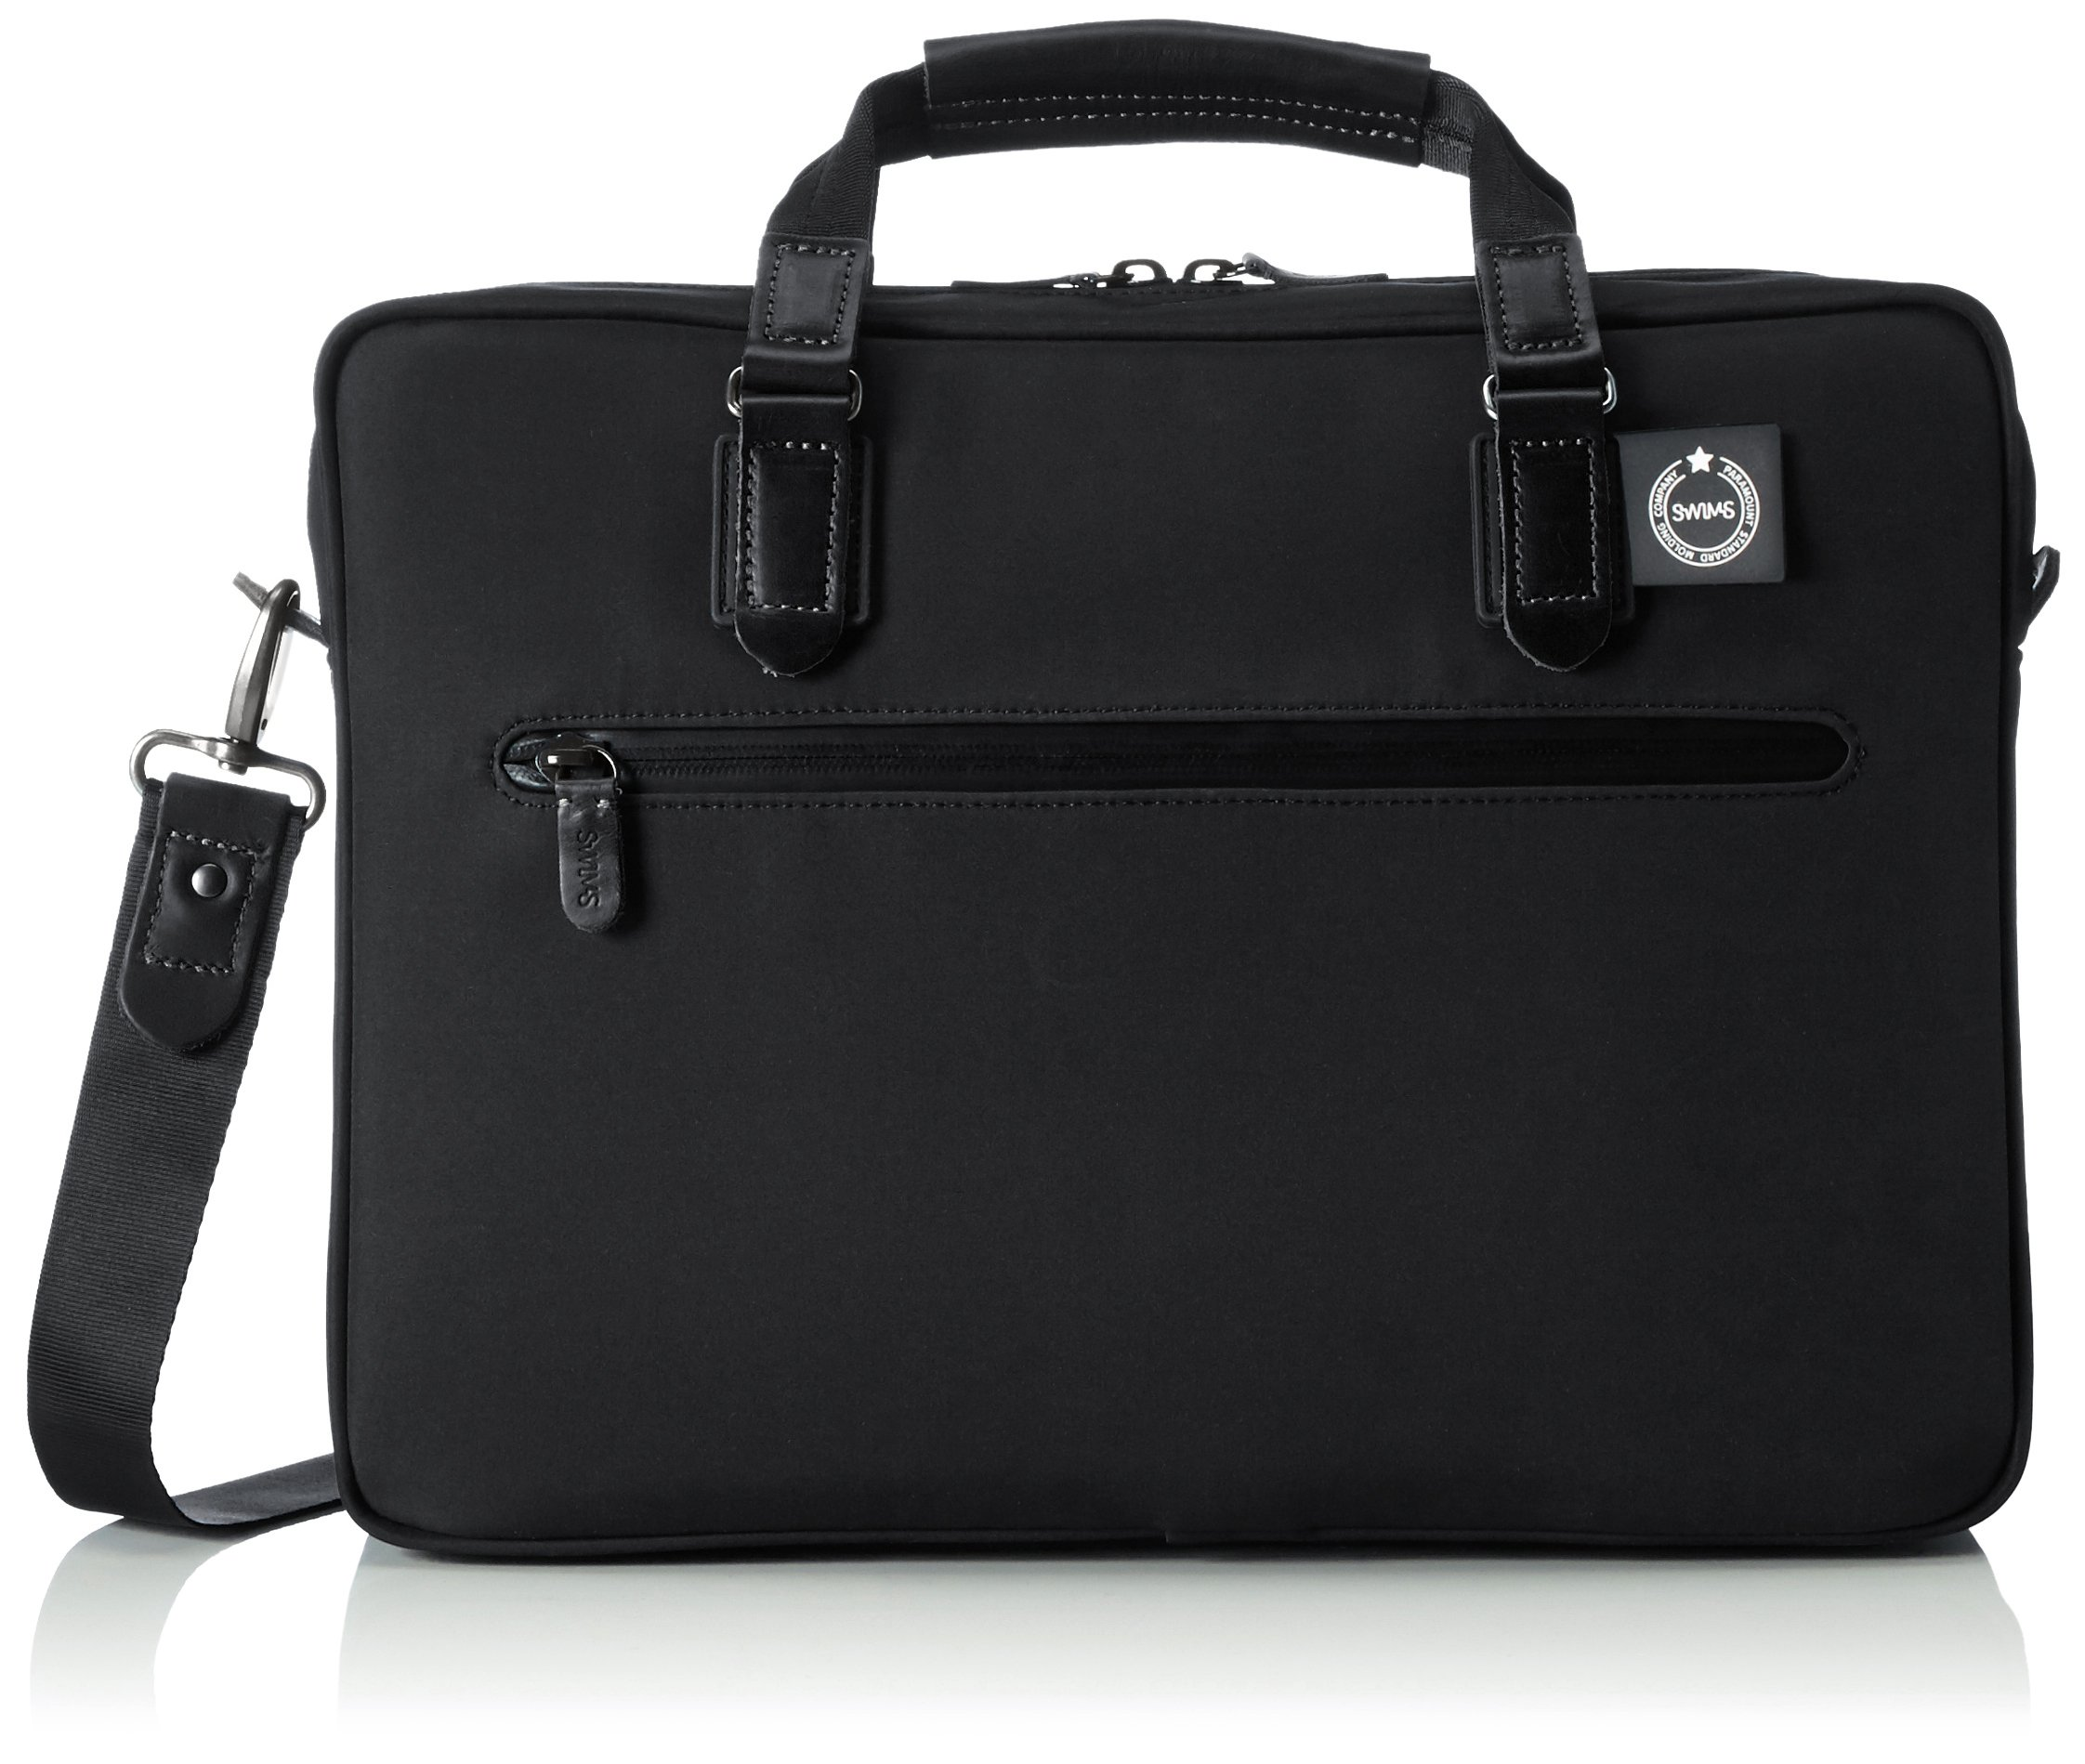 SWIMS 15.6 Inch Business Office Attache Fashionable Briefcase Computer Bag for Stylish Men Women - For Laptop/ iPad/ Tablet/ MacBook/ Acer/ HP/ Dell/ Lennovo - Water Proof & Resistant